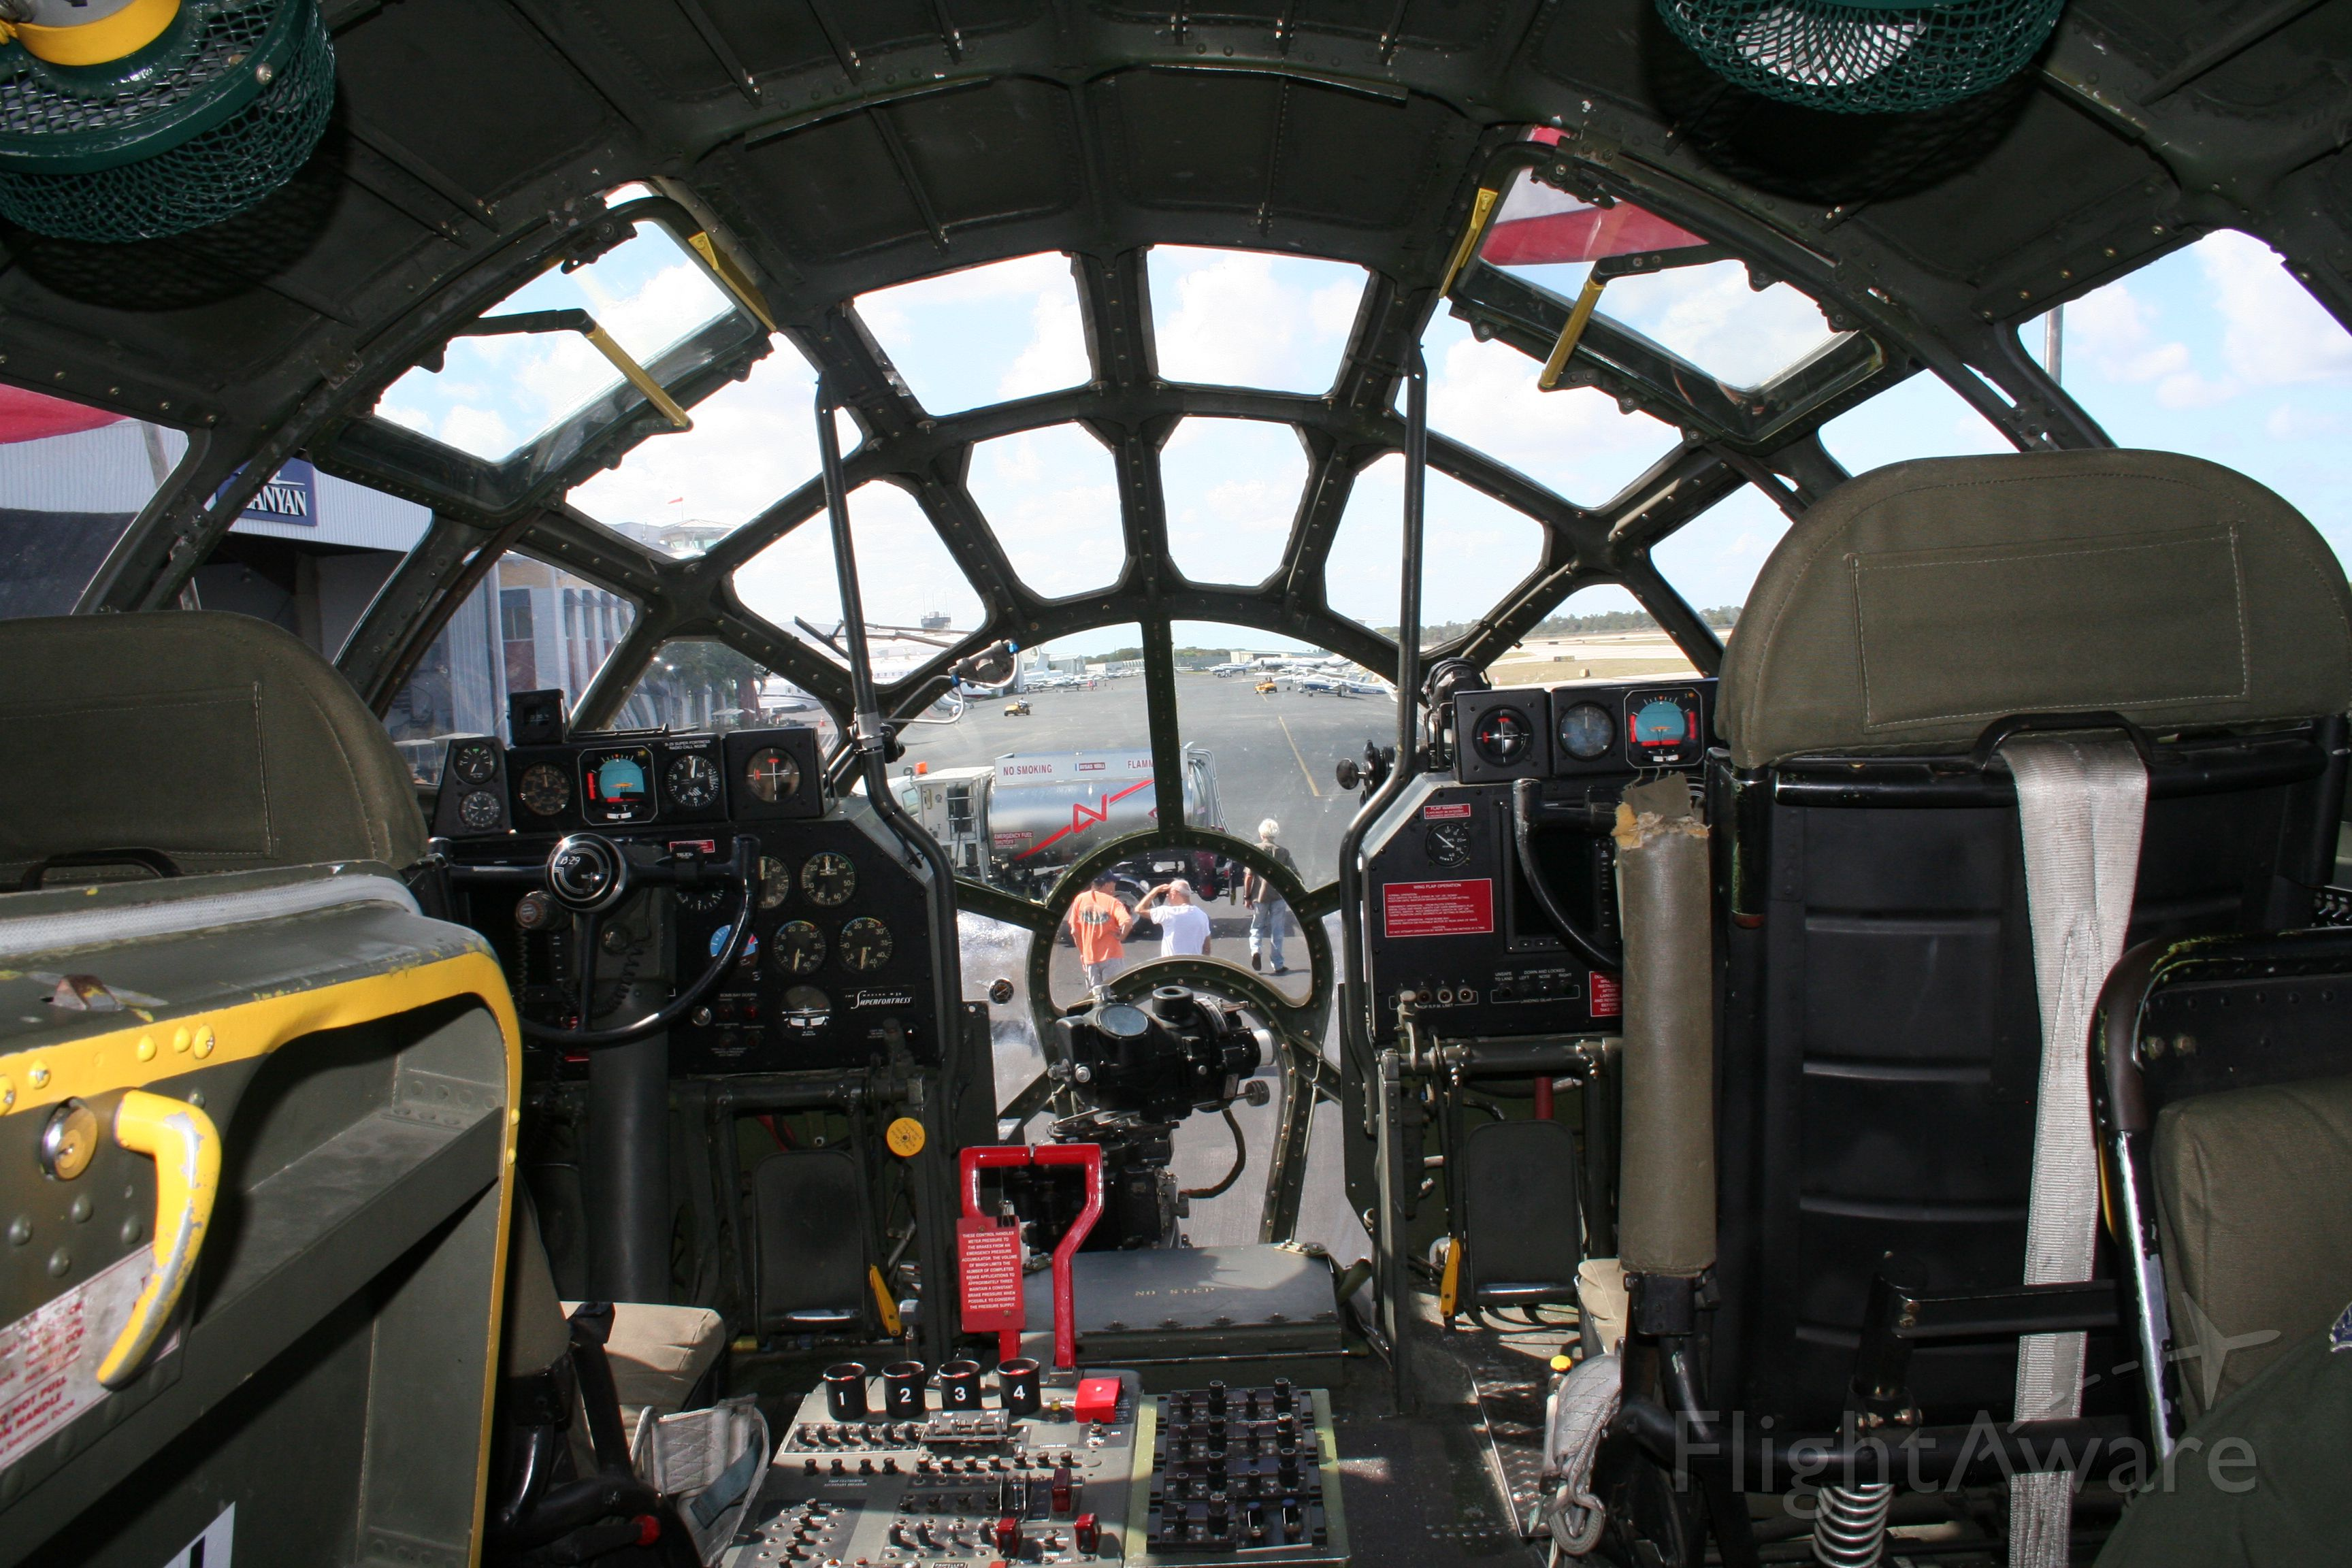 """Boeing B-29 Superfortress (NX529B) - Check out our aviation videos with 100% authentic and non-leveled sound! <a rel=""""nofollow"""" href=""""http://youtube.com/ilikerio"""">https://youtube.com/ilikerio</a><br /><br />""""FIFI""""s cockpit."""